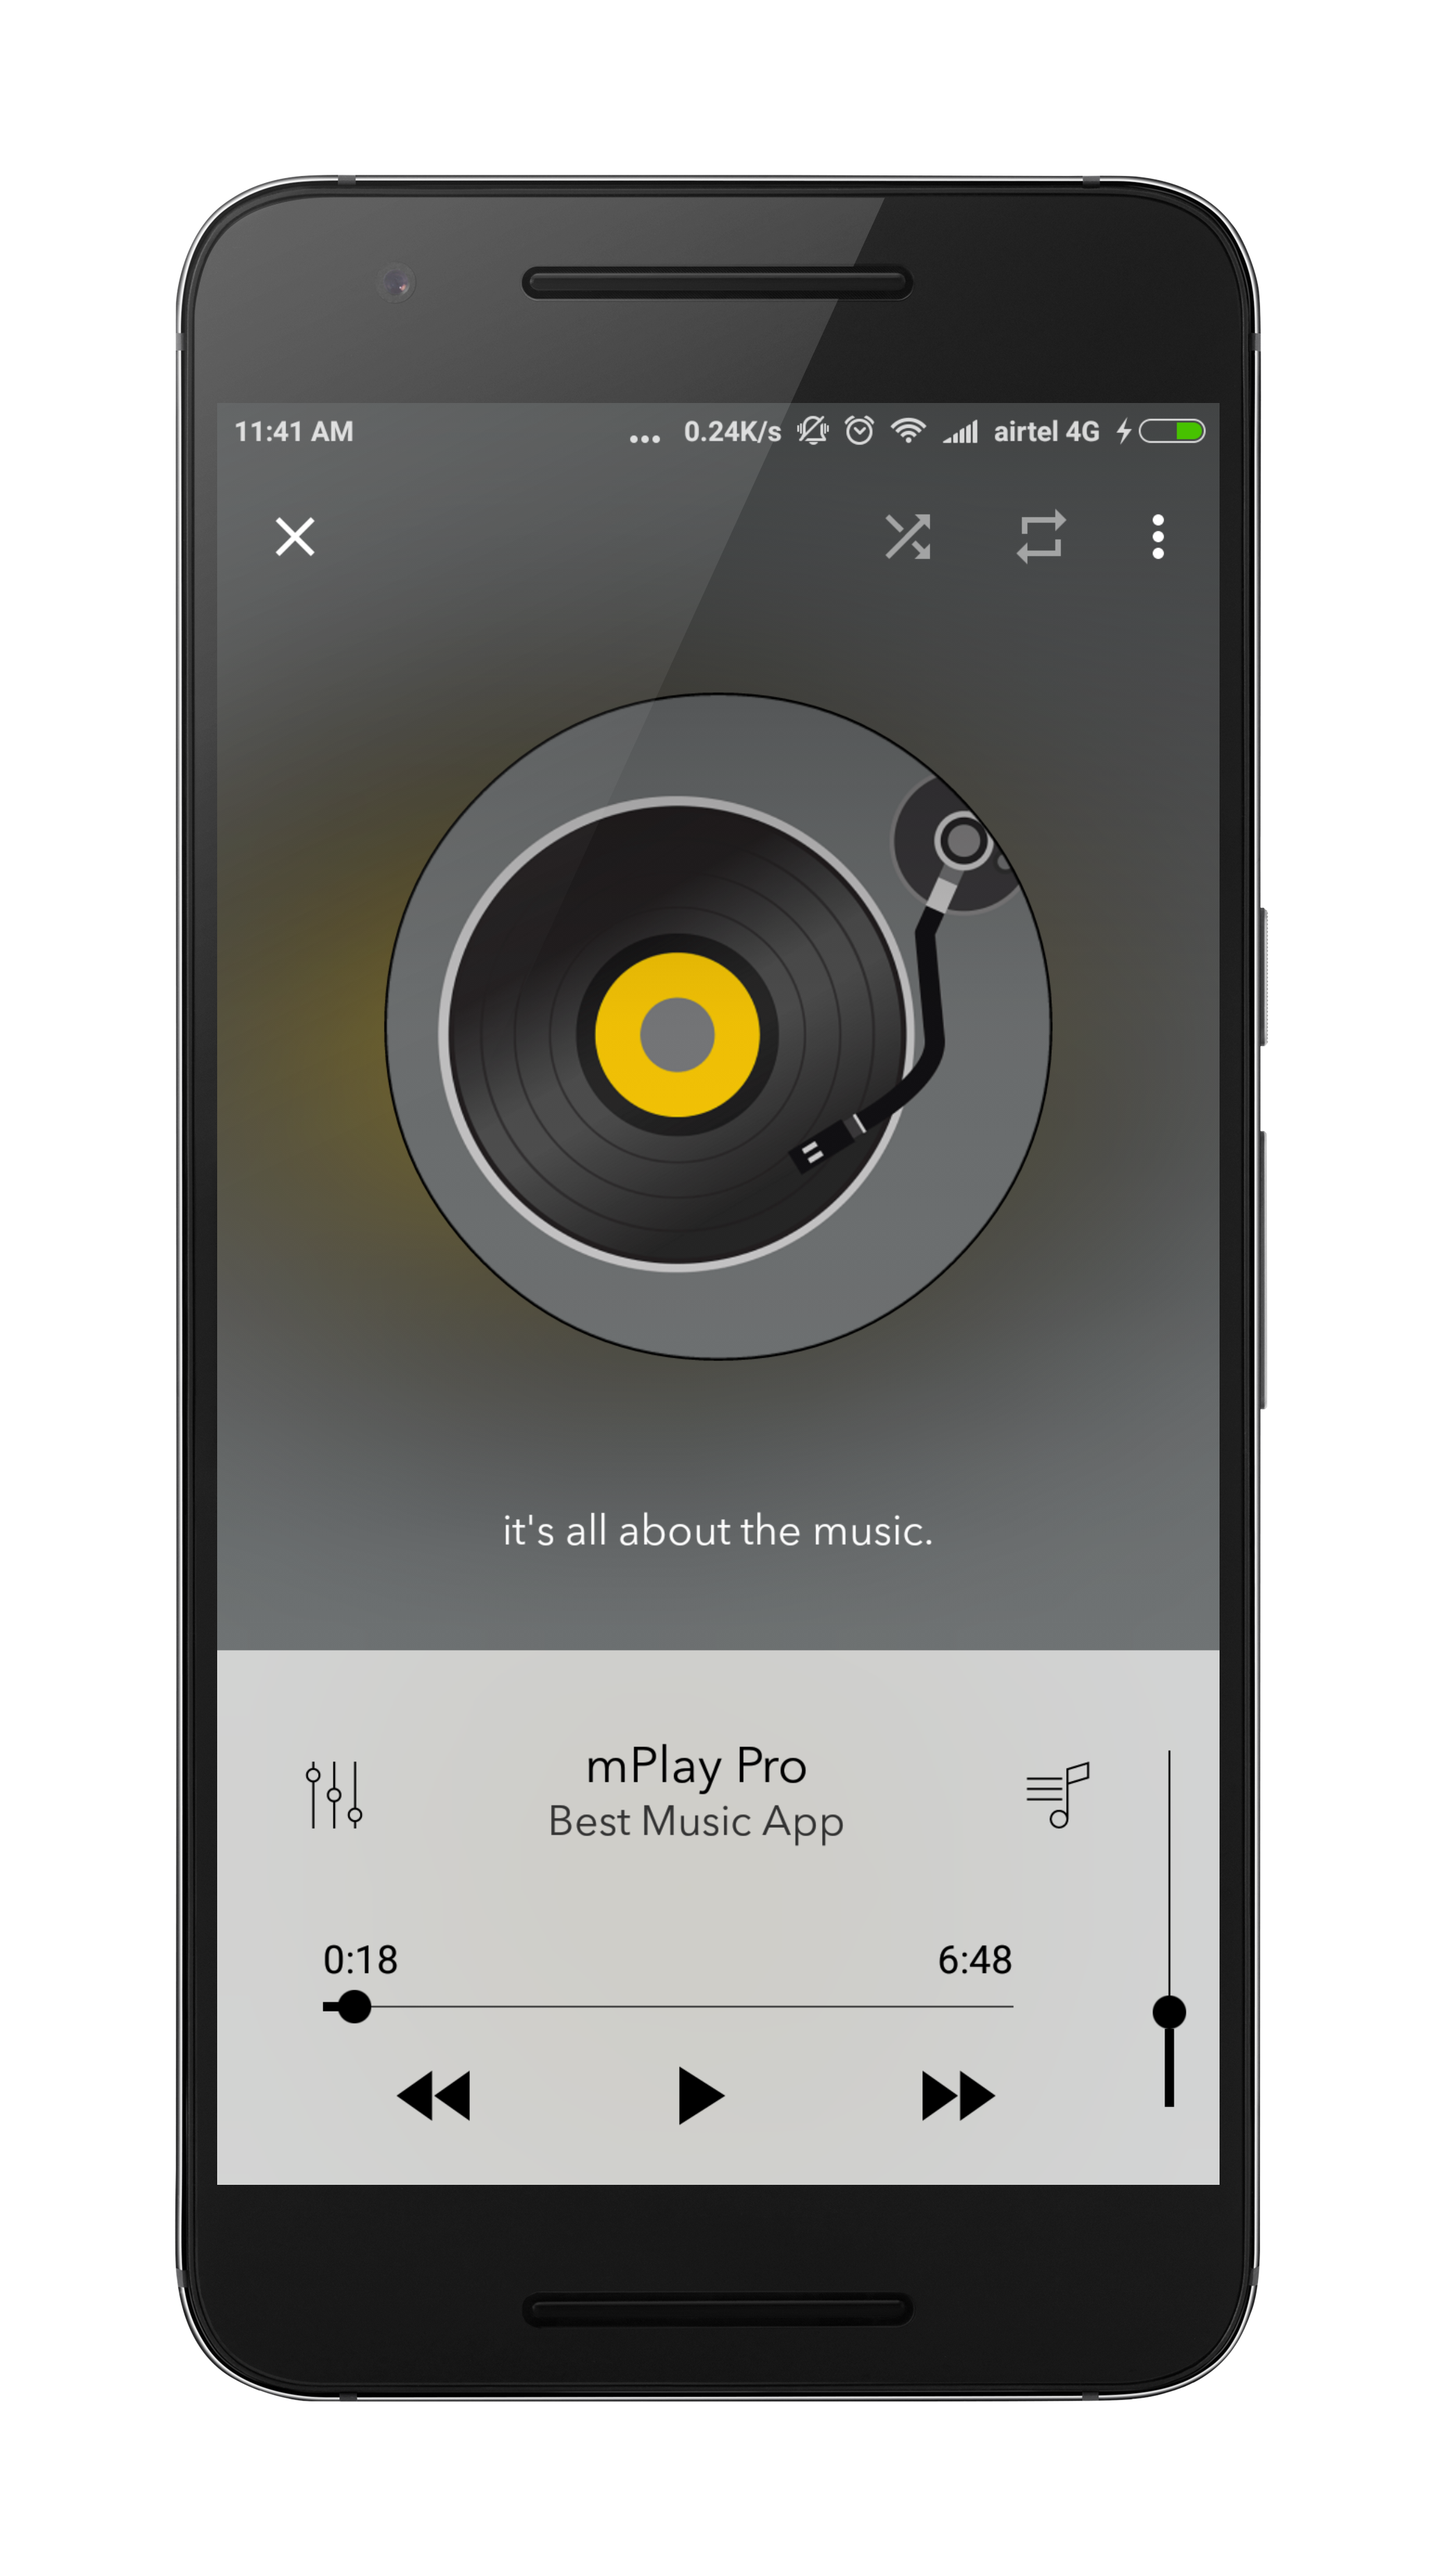 Music Player - mPlay Pro